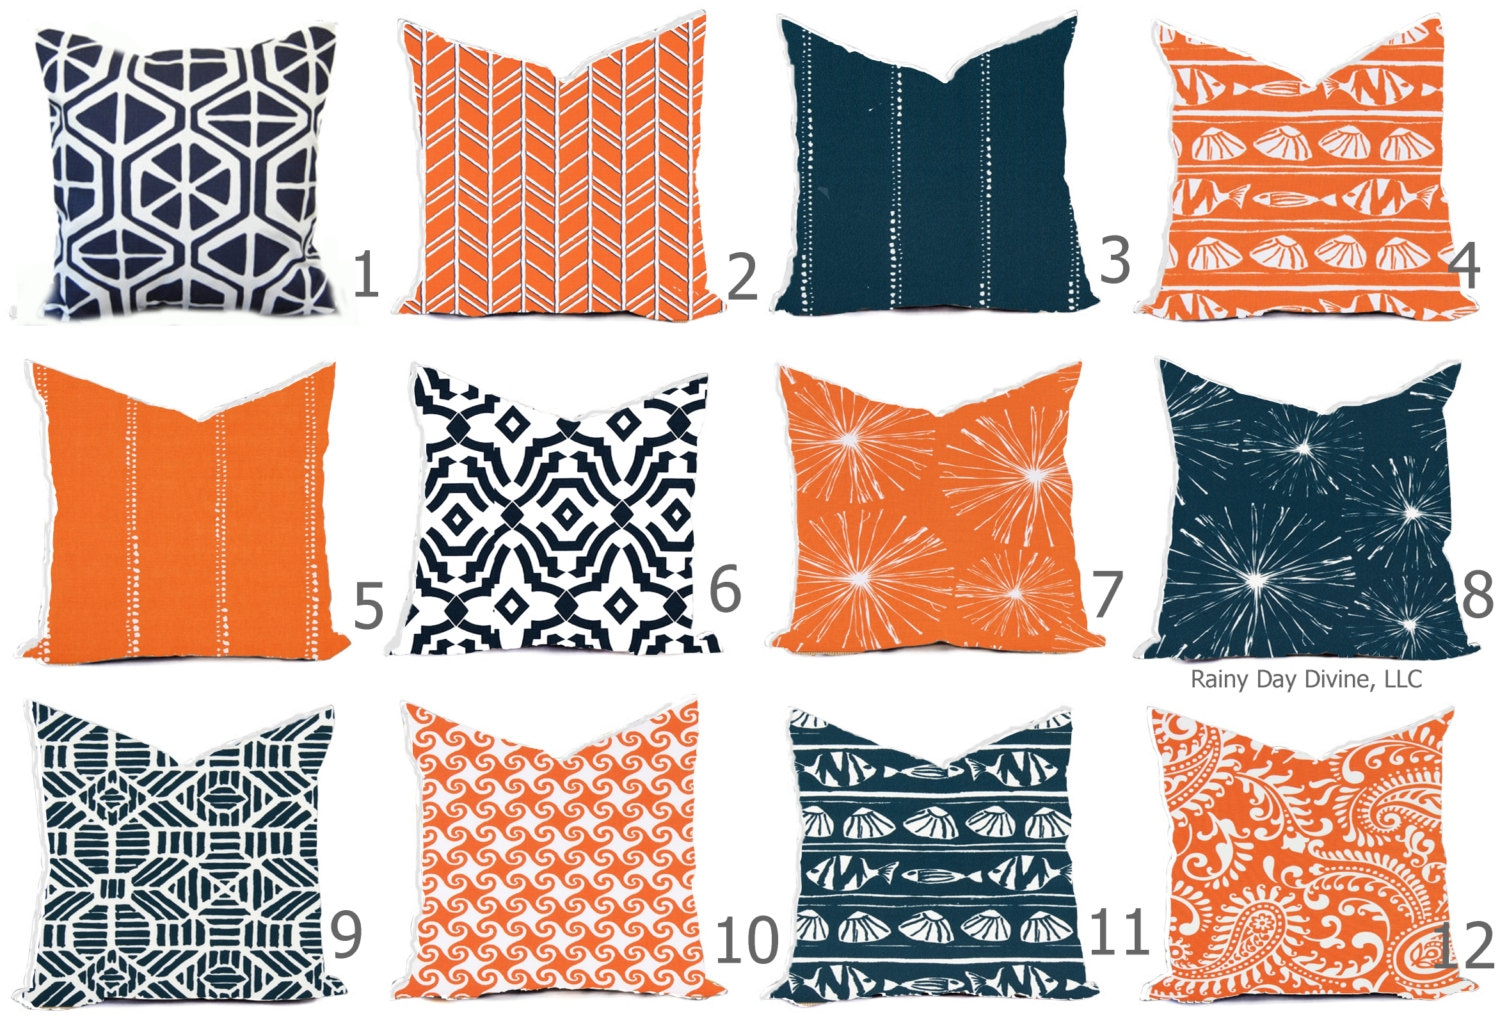 Pillow Pillows Outdoor or Indoor Custom Cover Navy Blue Tangerine